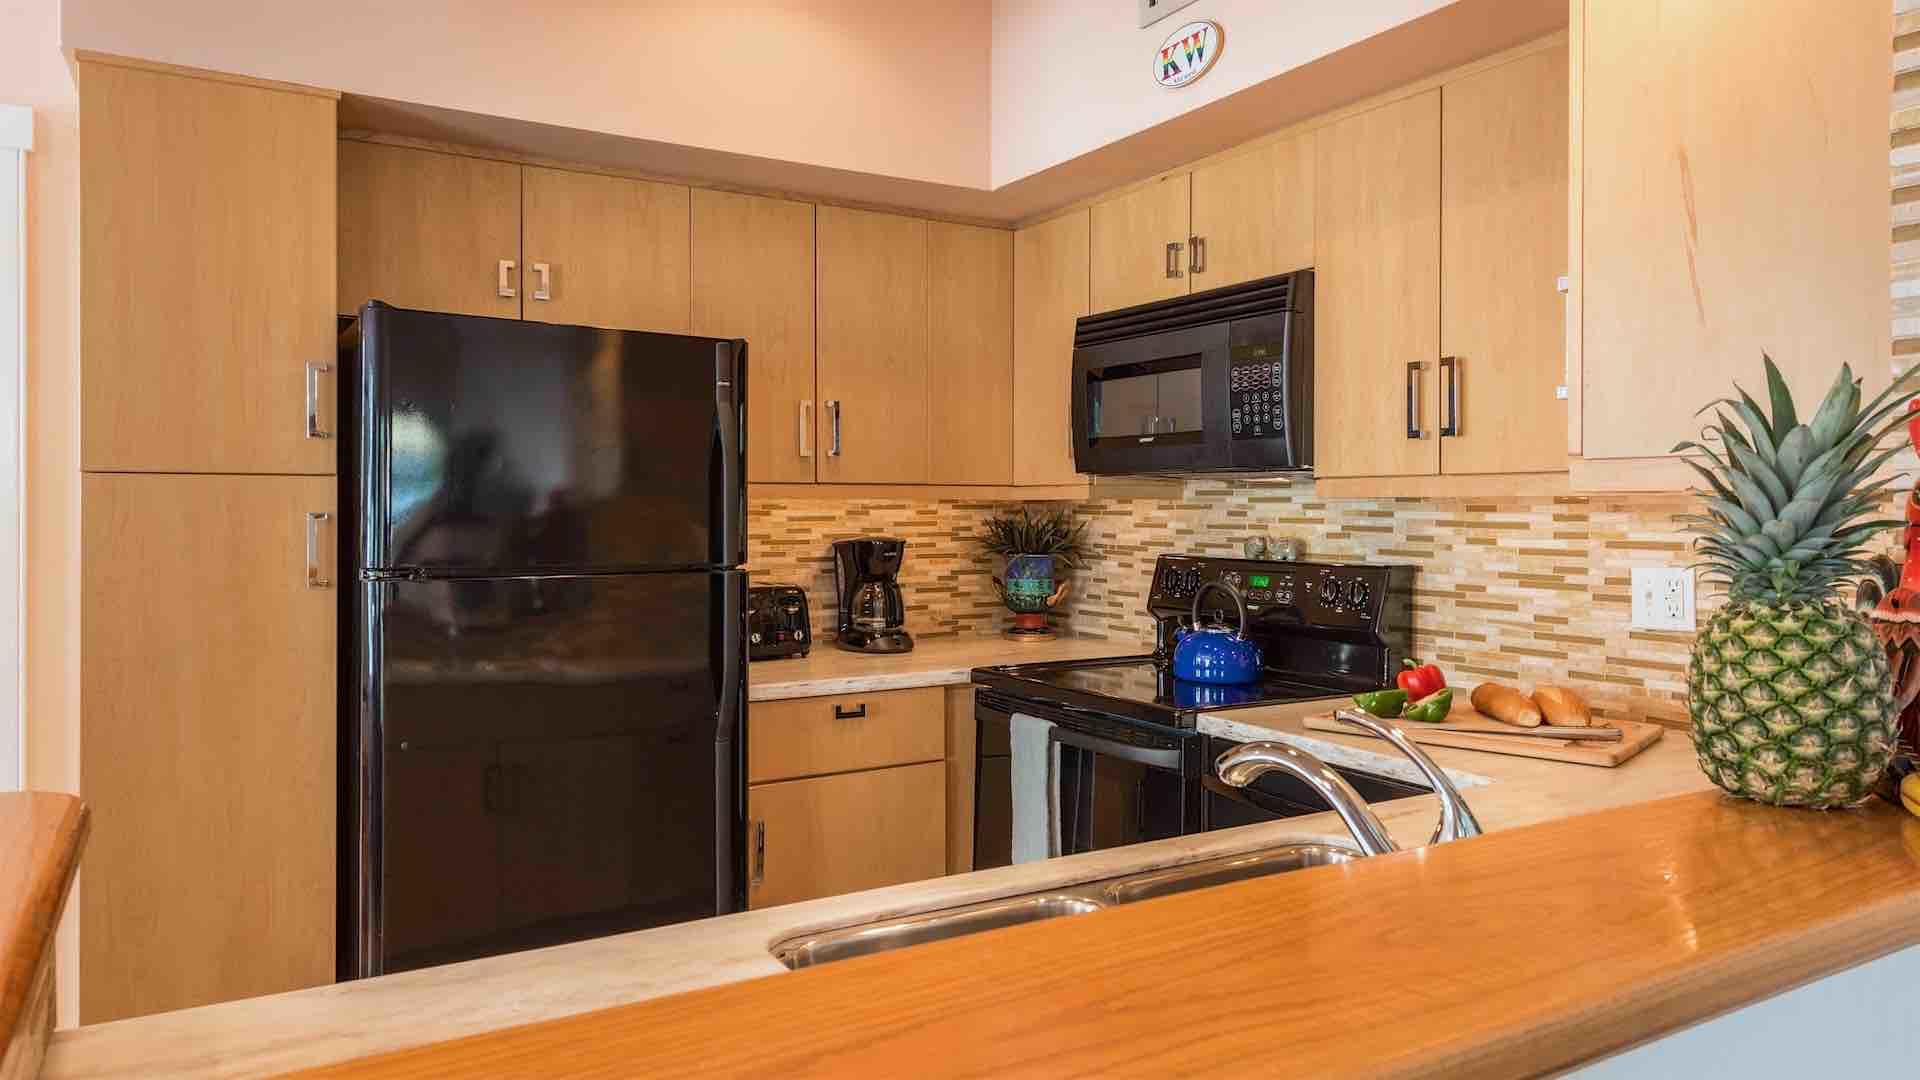 The open kitchen is fully equipped with all the high-end tools and appliances you'll need to whip up a meal at home...